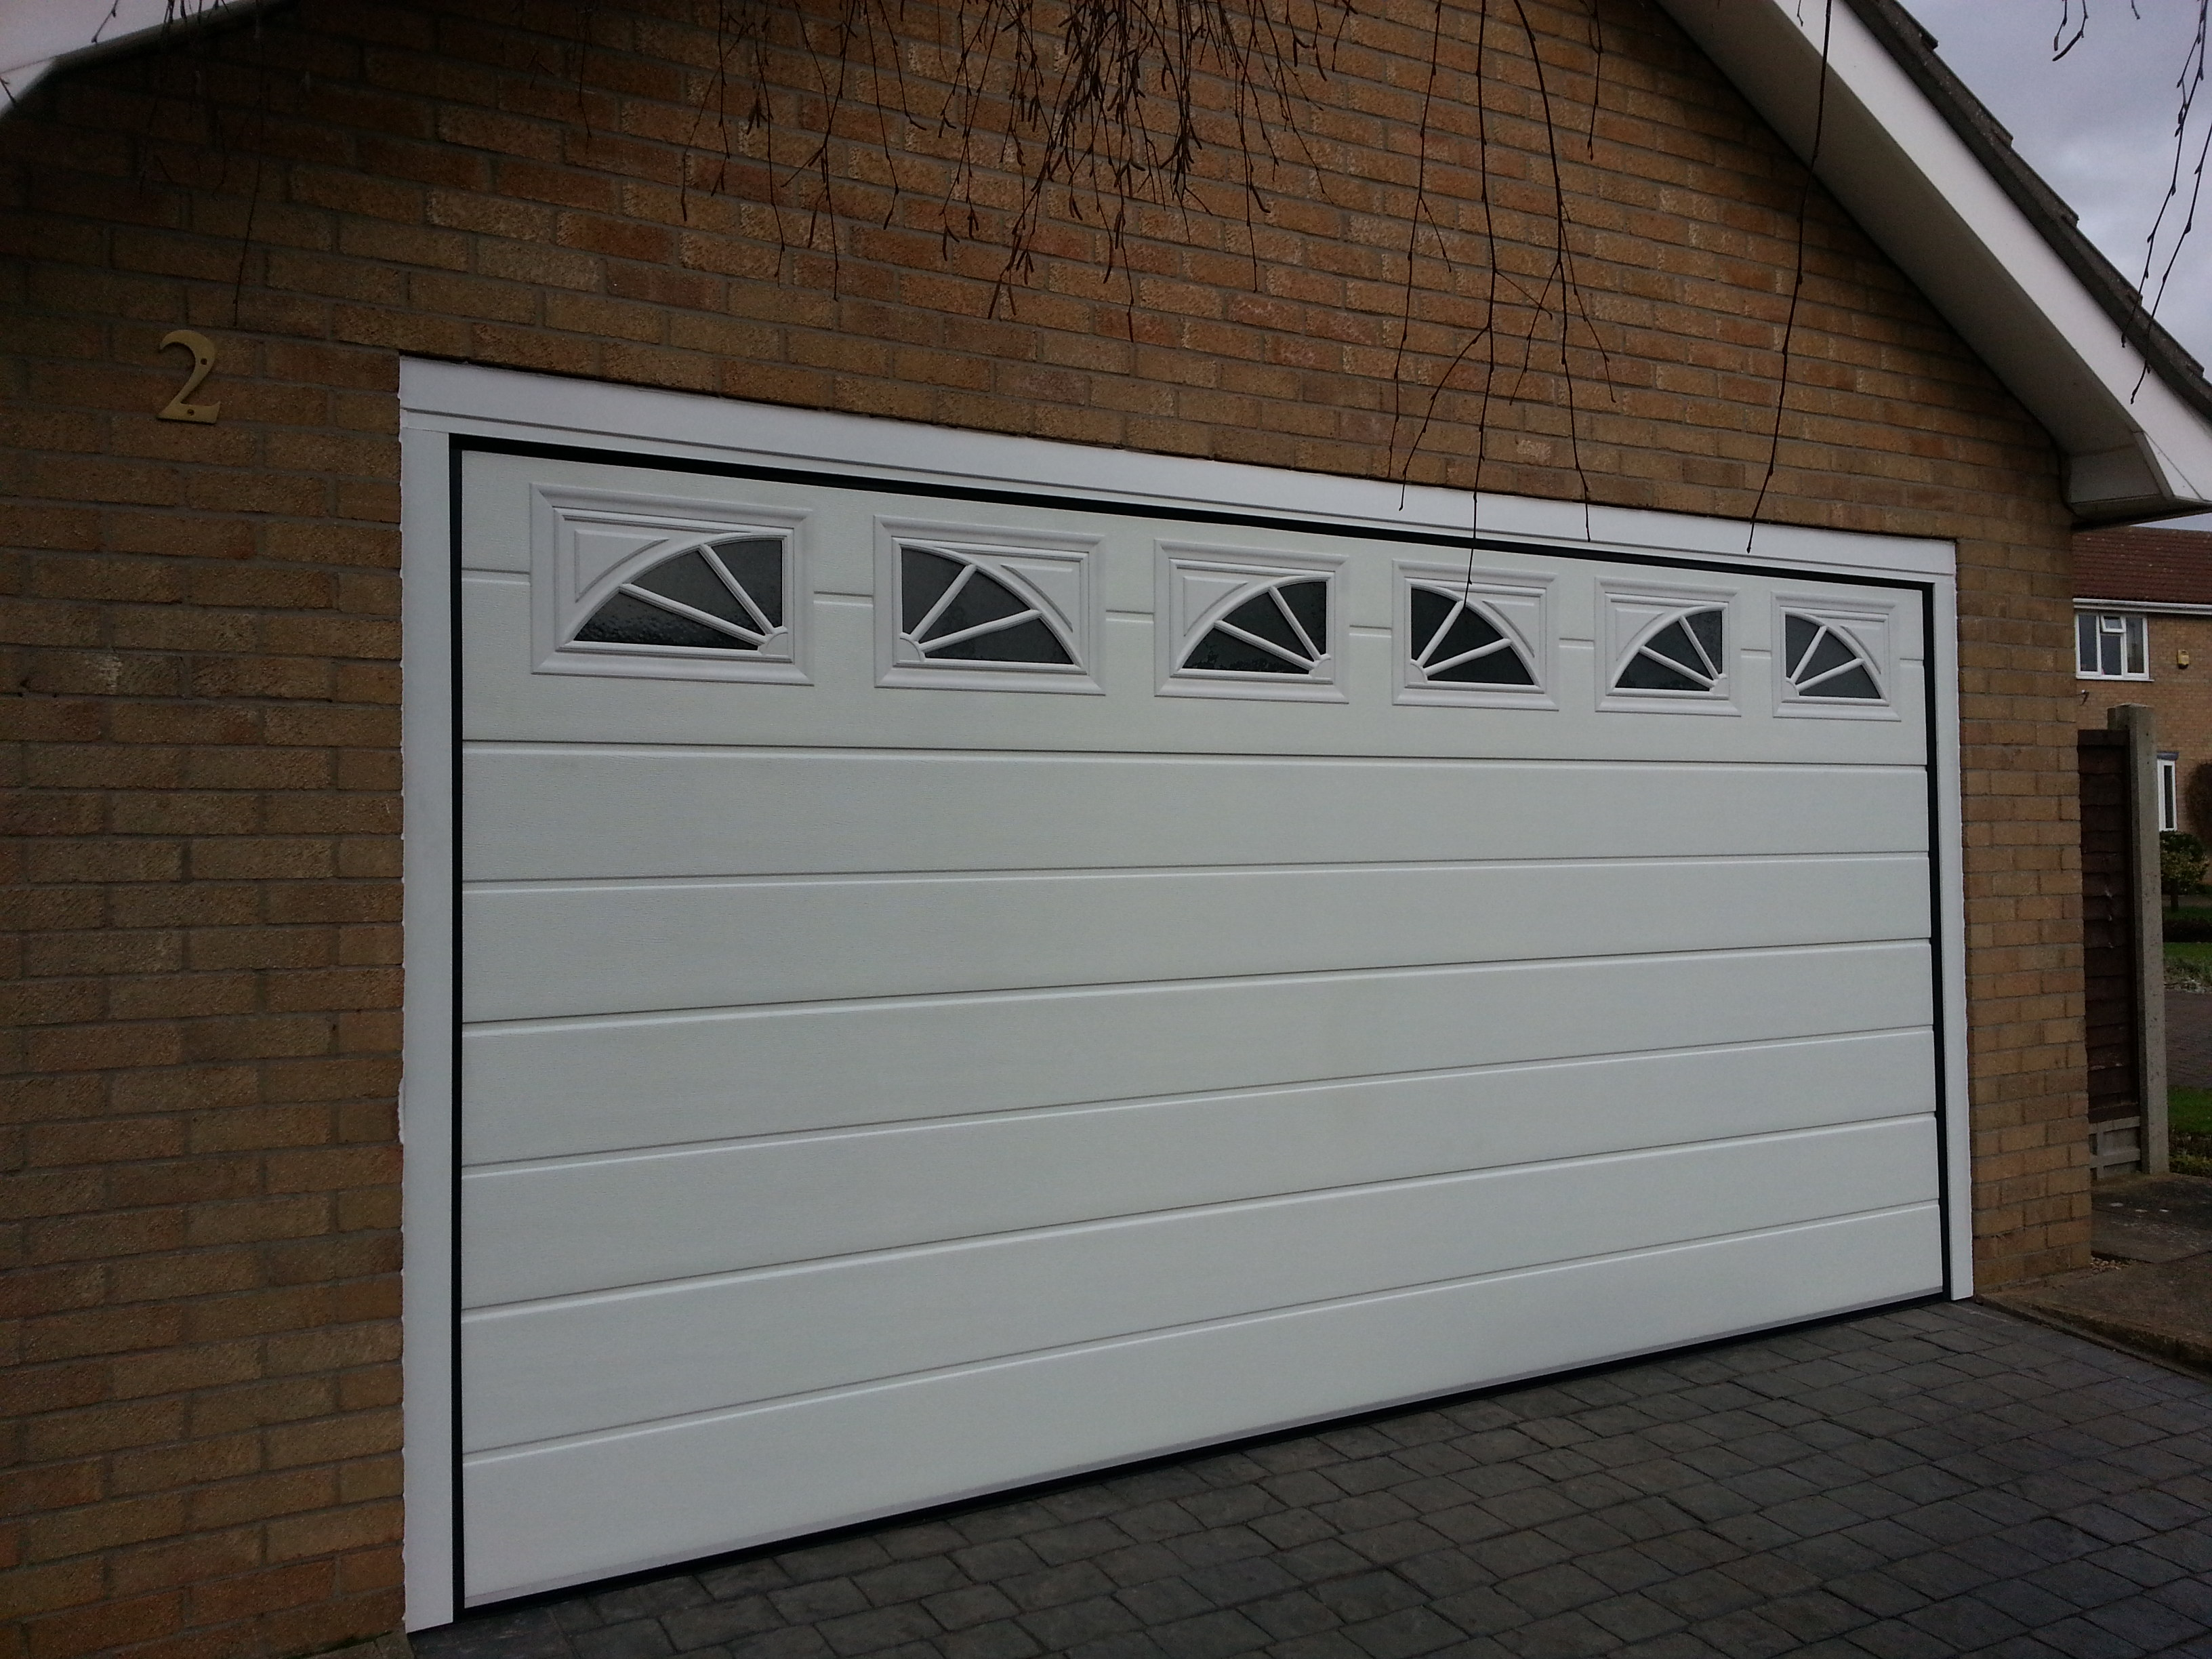 New garage door with windows grantham garage door for New windows doors